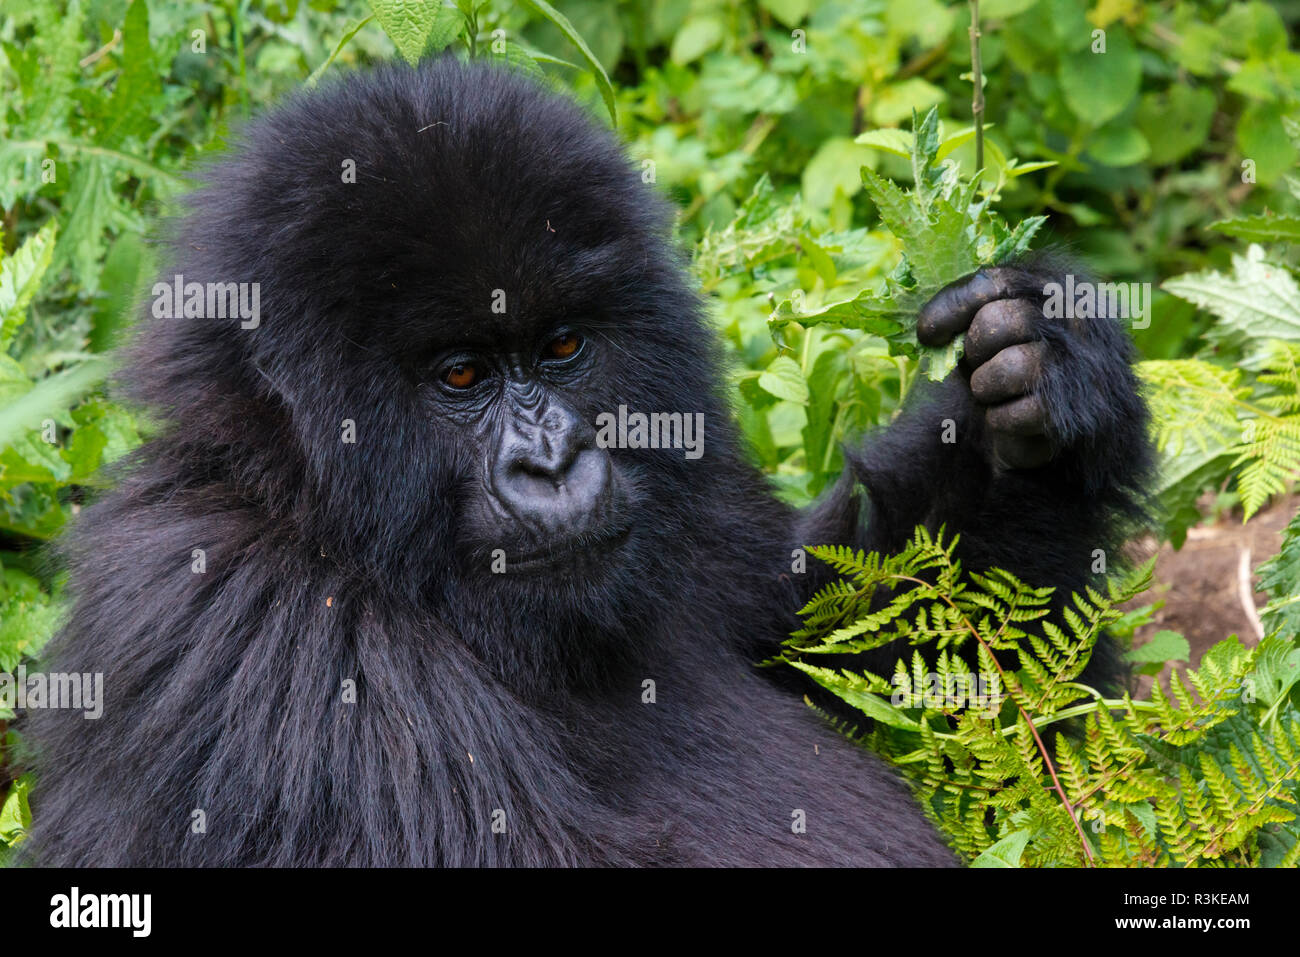 Gorilla in the forest, Parc National des Volcans, Rwanda - Stock Image